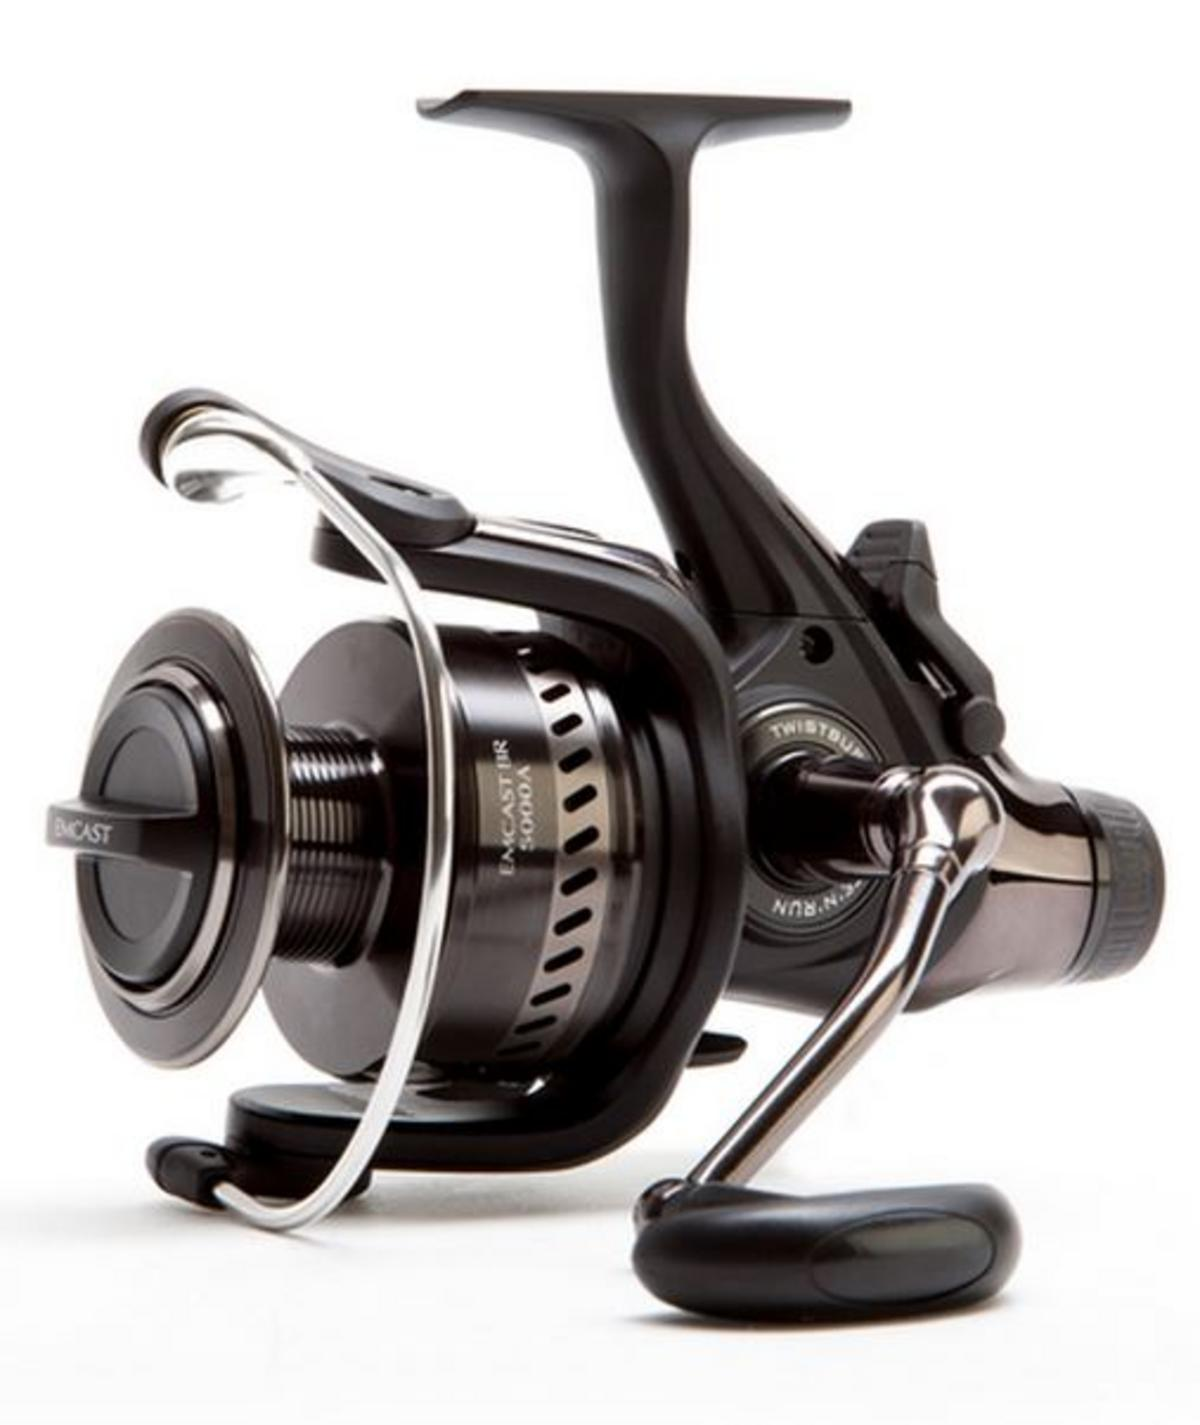 NEW DAIWA EMCAST BR 4000 FISHING REEL MODEL NO. ECBR4000A